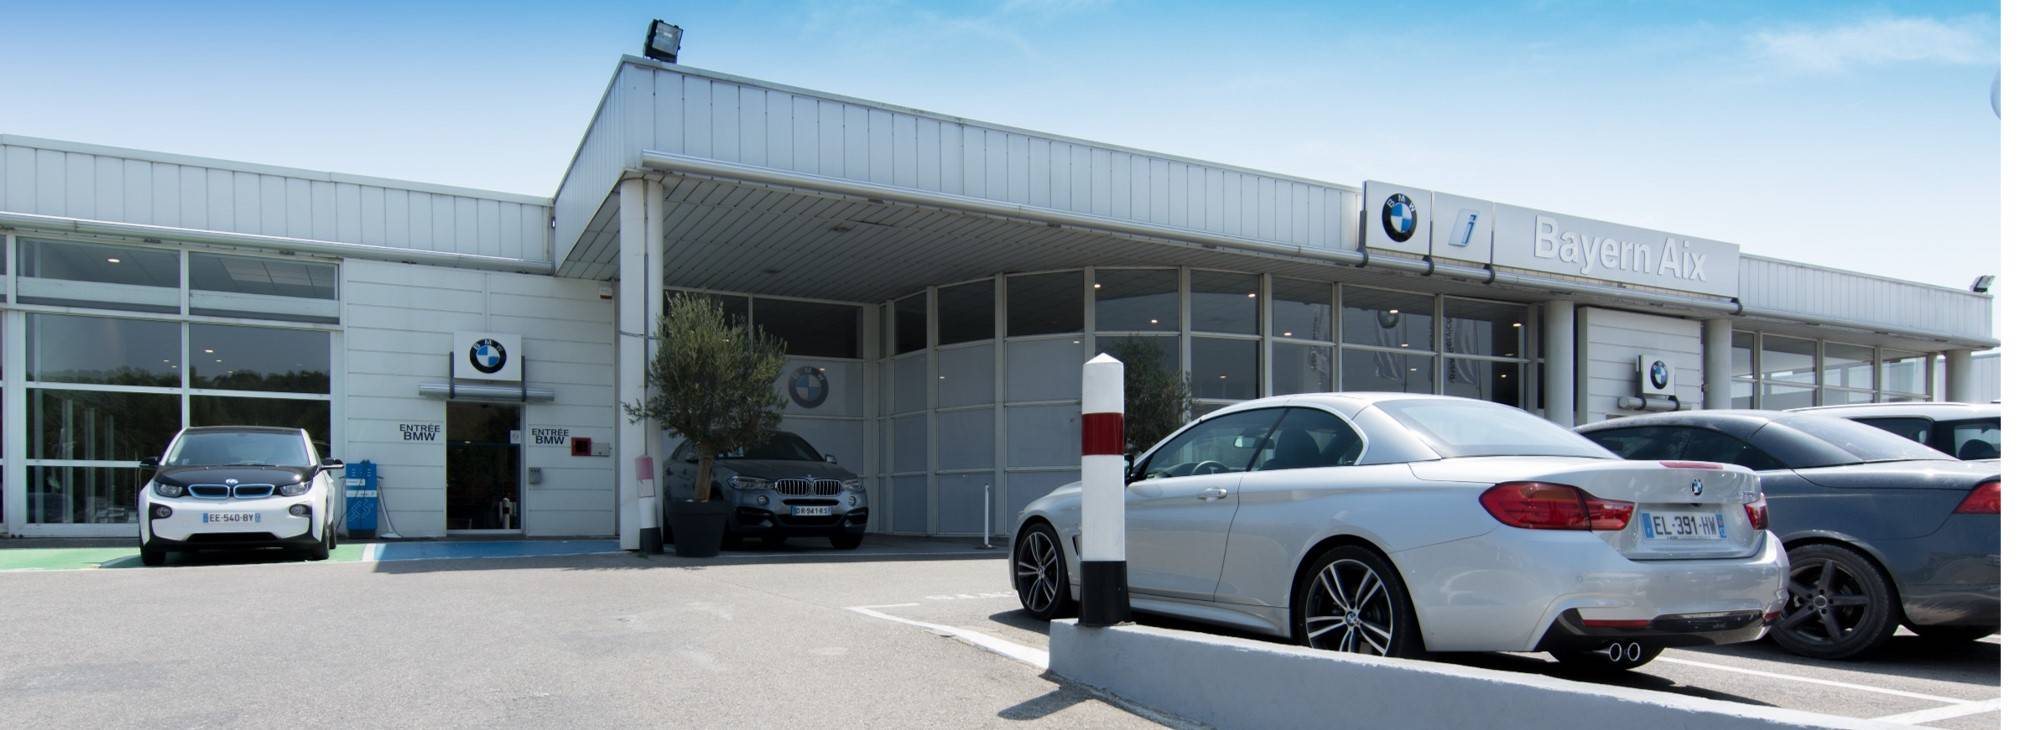 Garage opel aix en provence volvo aix en provence for Top garage aix